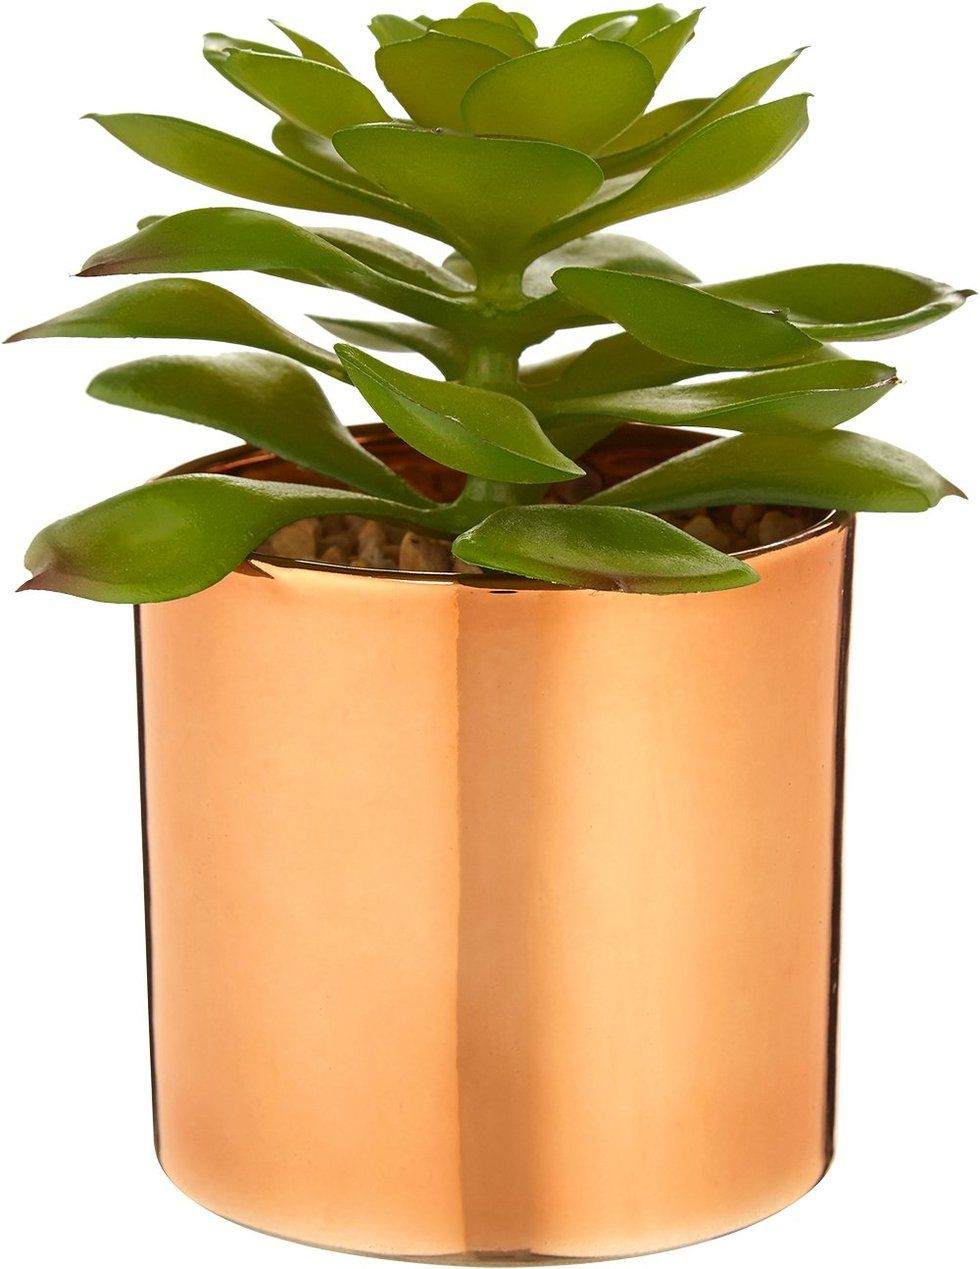 How To Fake It The Artificial Plants That Look Good Enough To Water